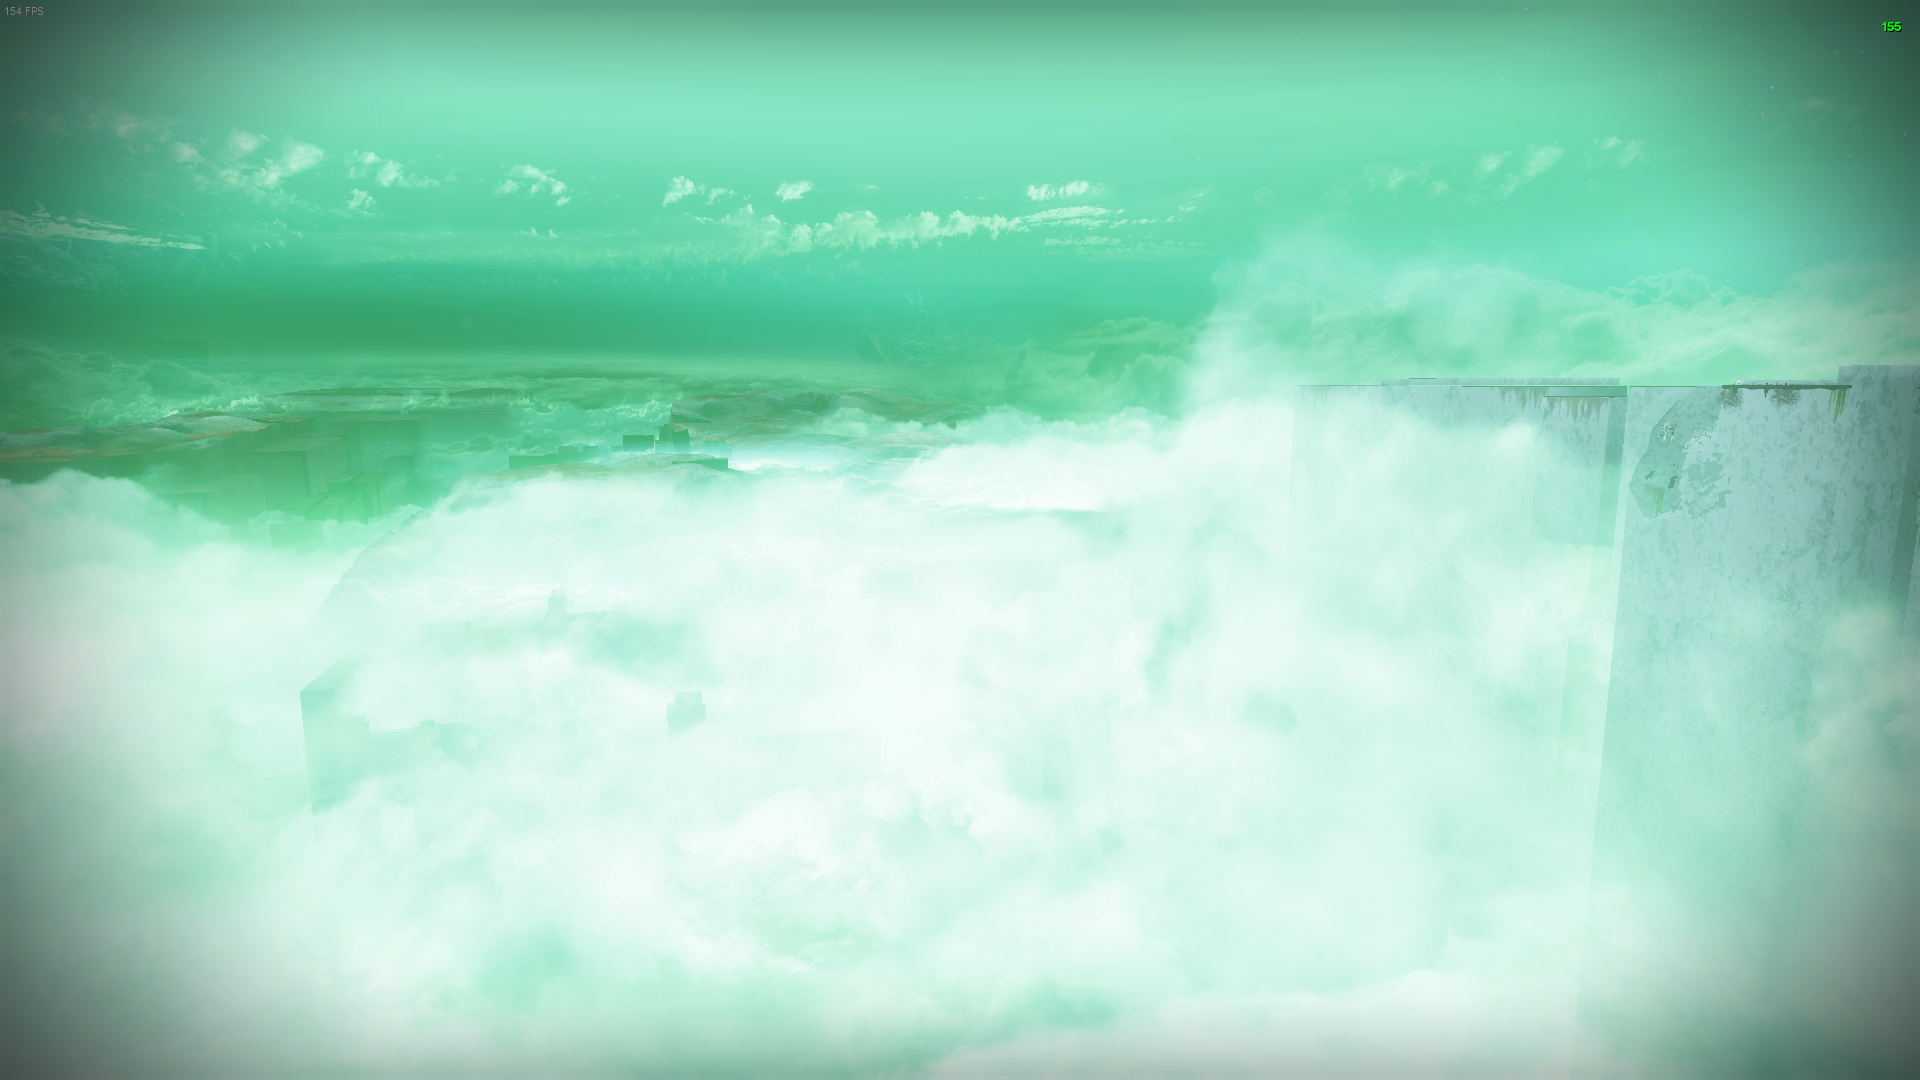 First person perspective of a Guardian overlooking a giant hole filled with clouds. The ground continues into the distance before dropping off.